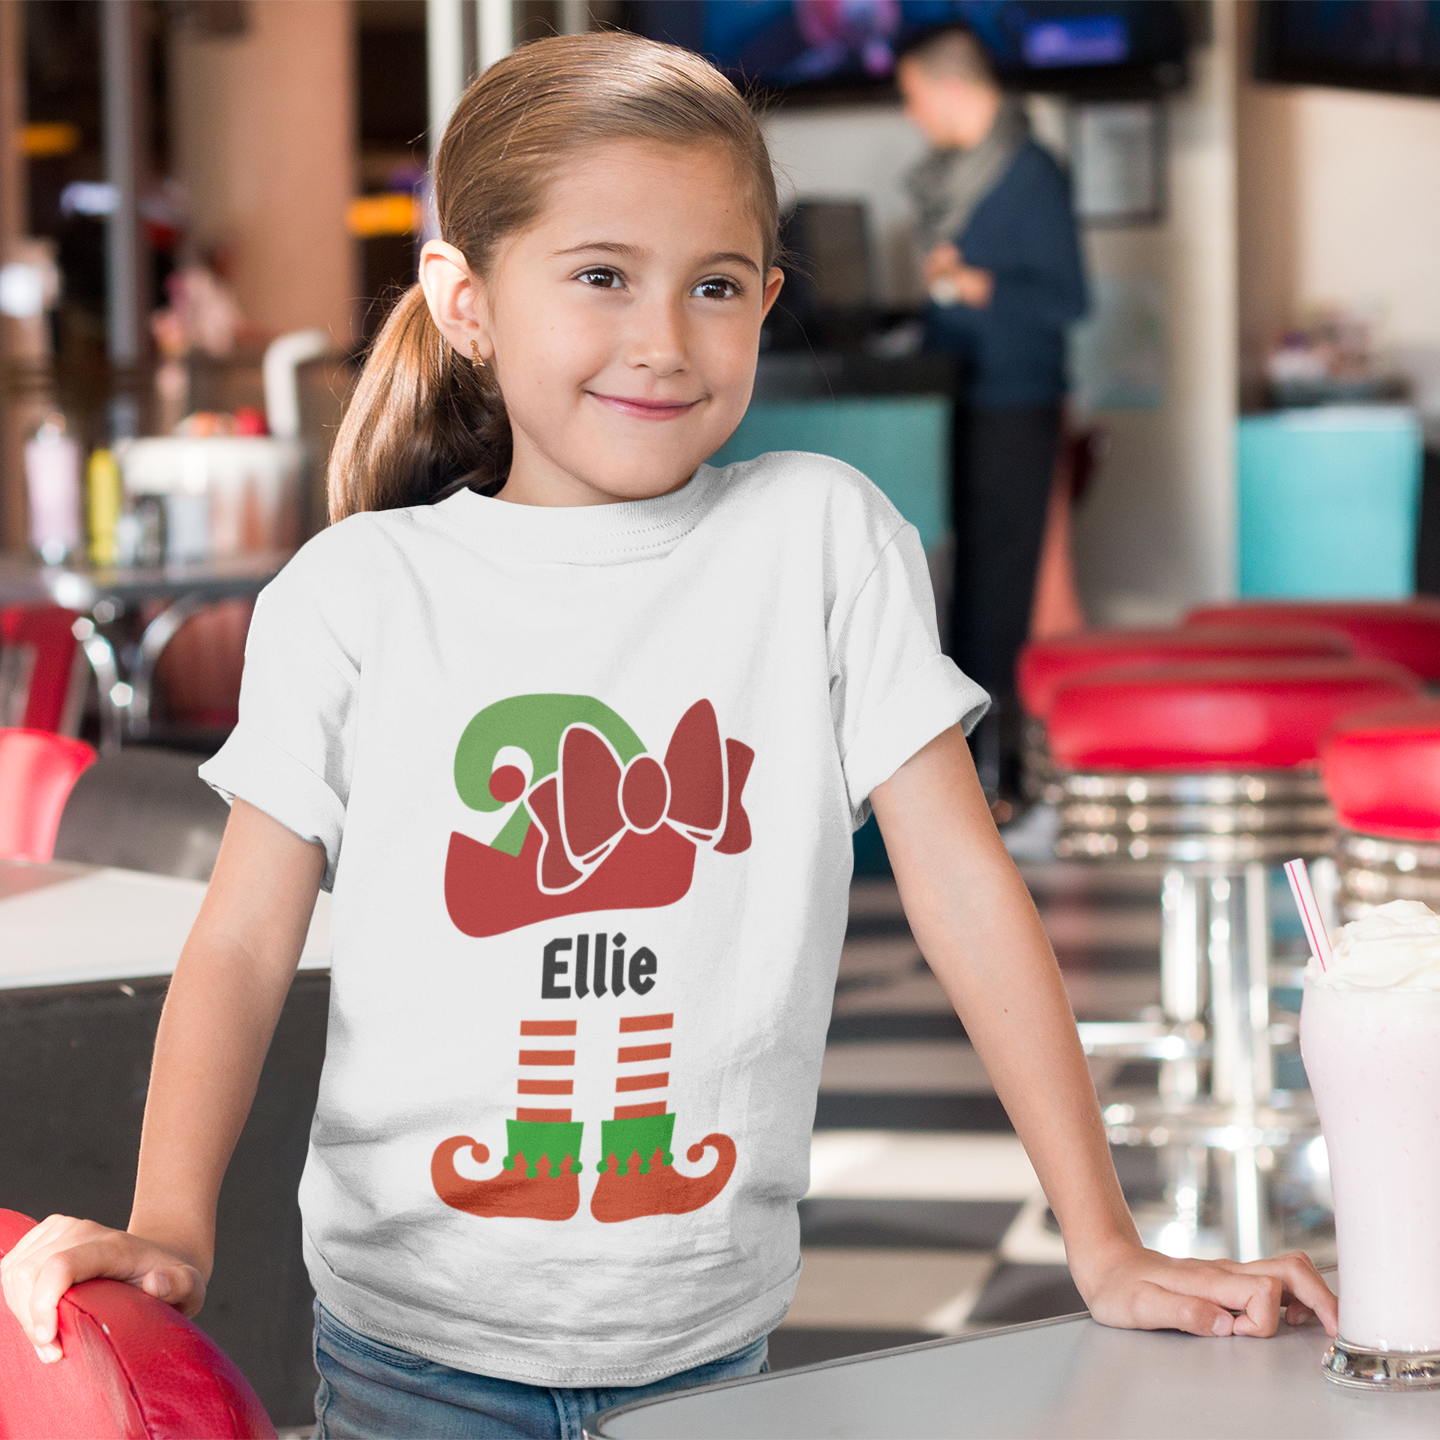 Youth Elf T-Shirt (8 - 12 Years)